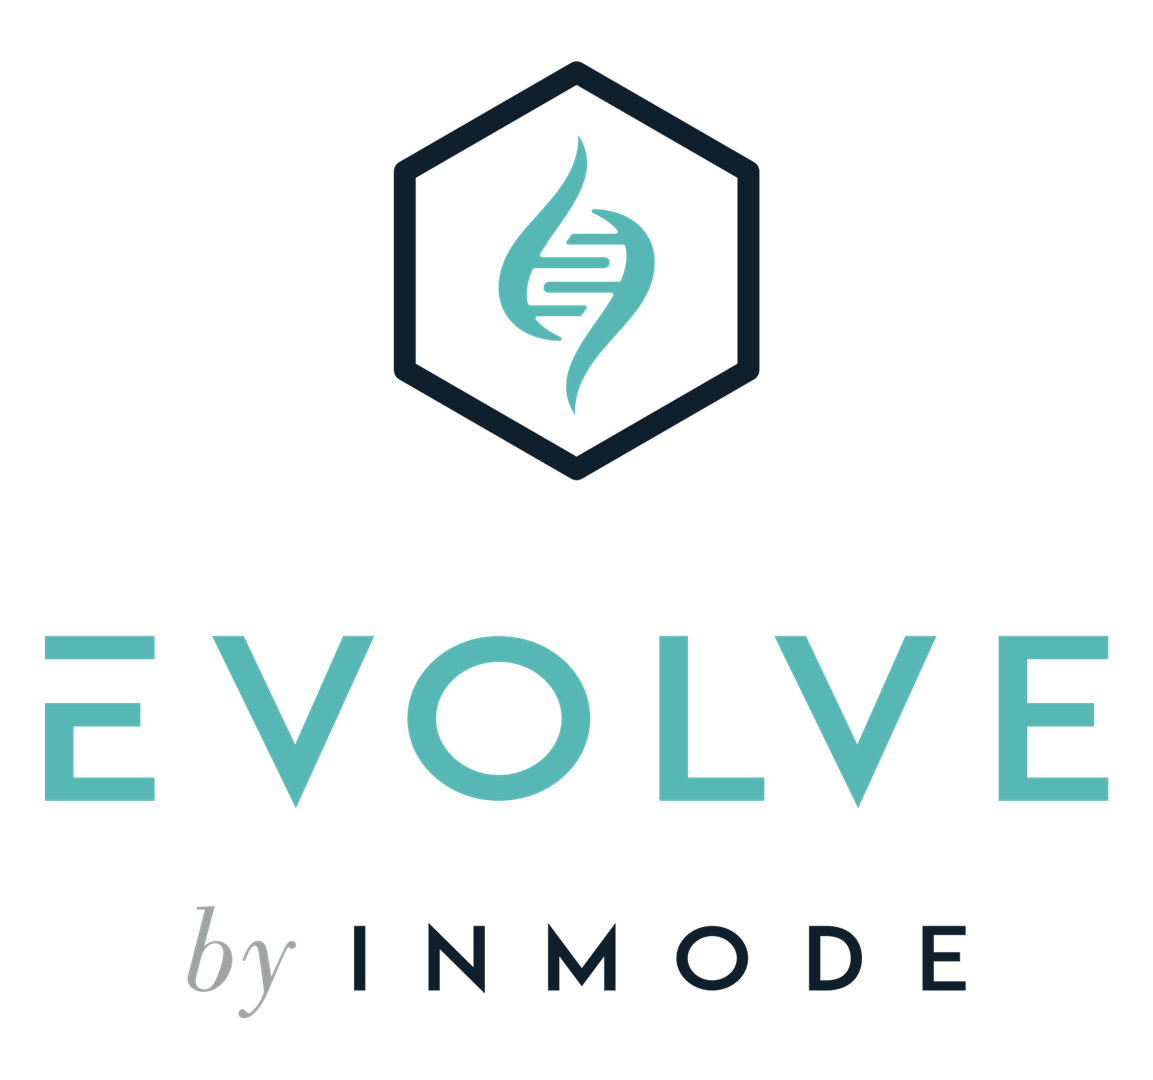 Evolve by Inmode